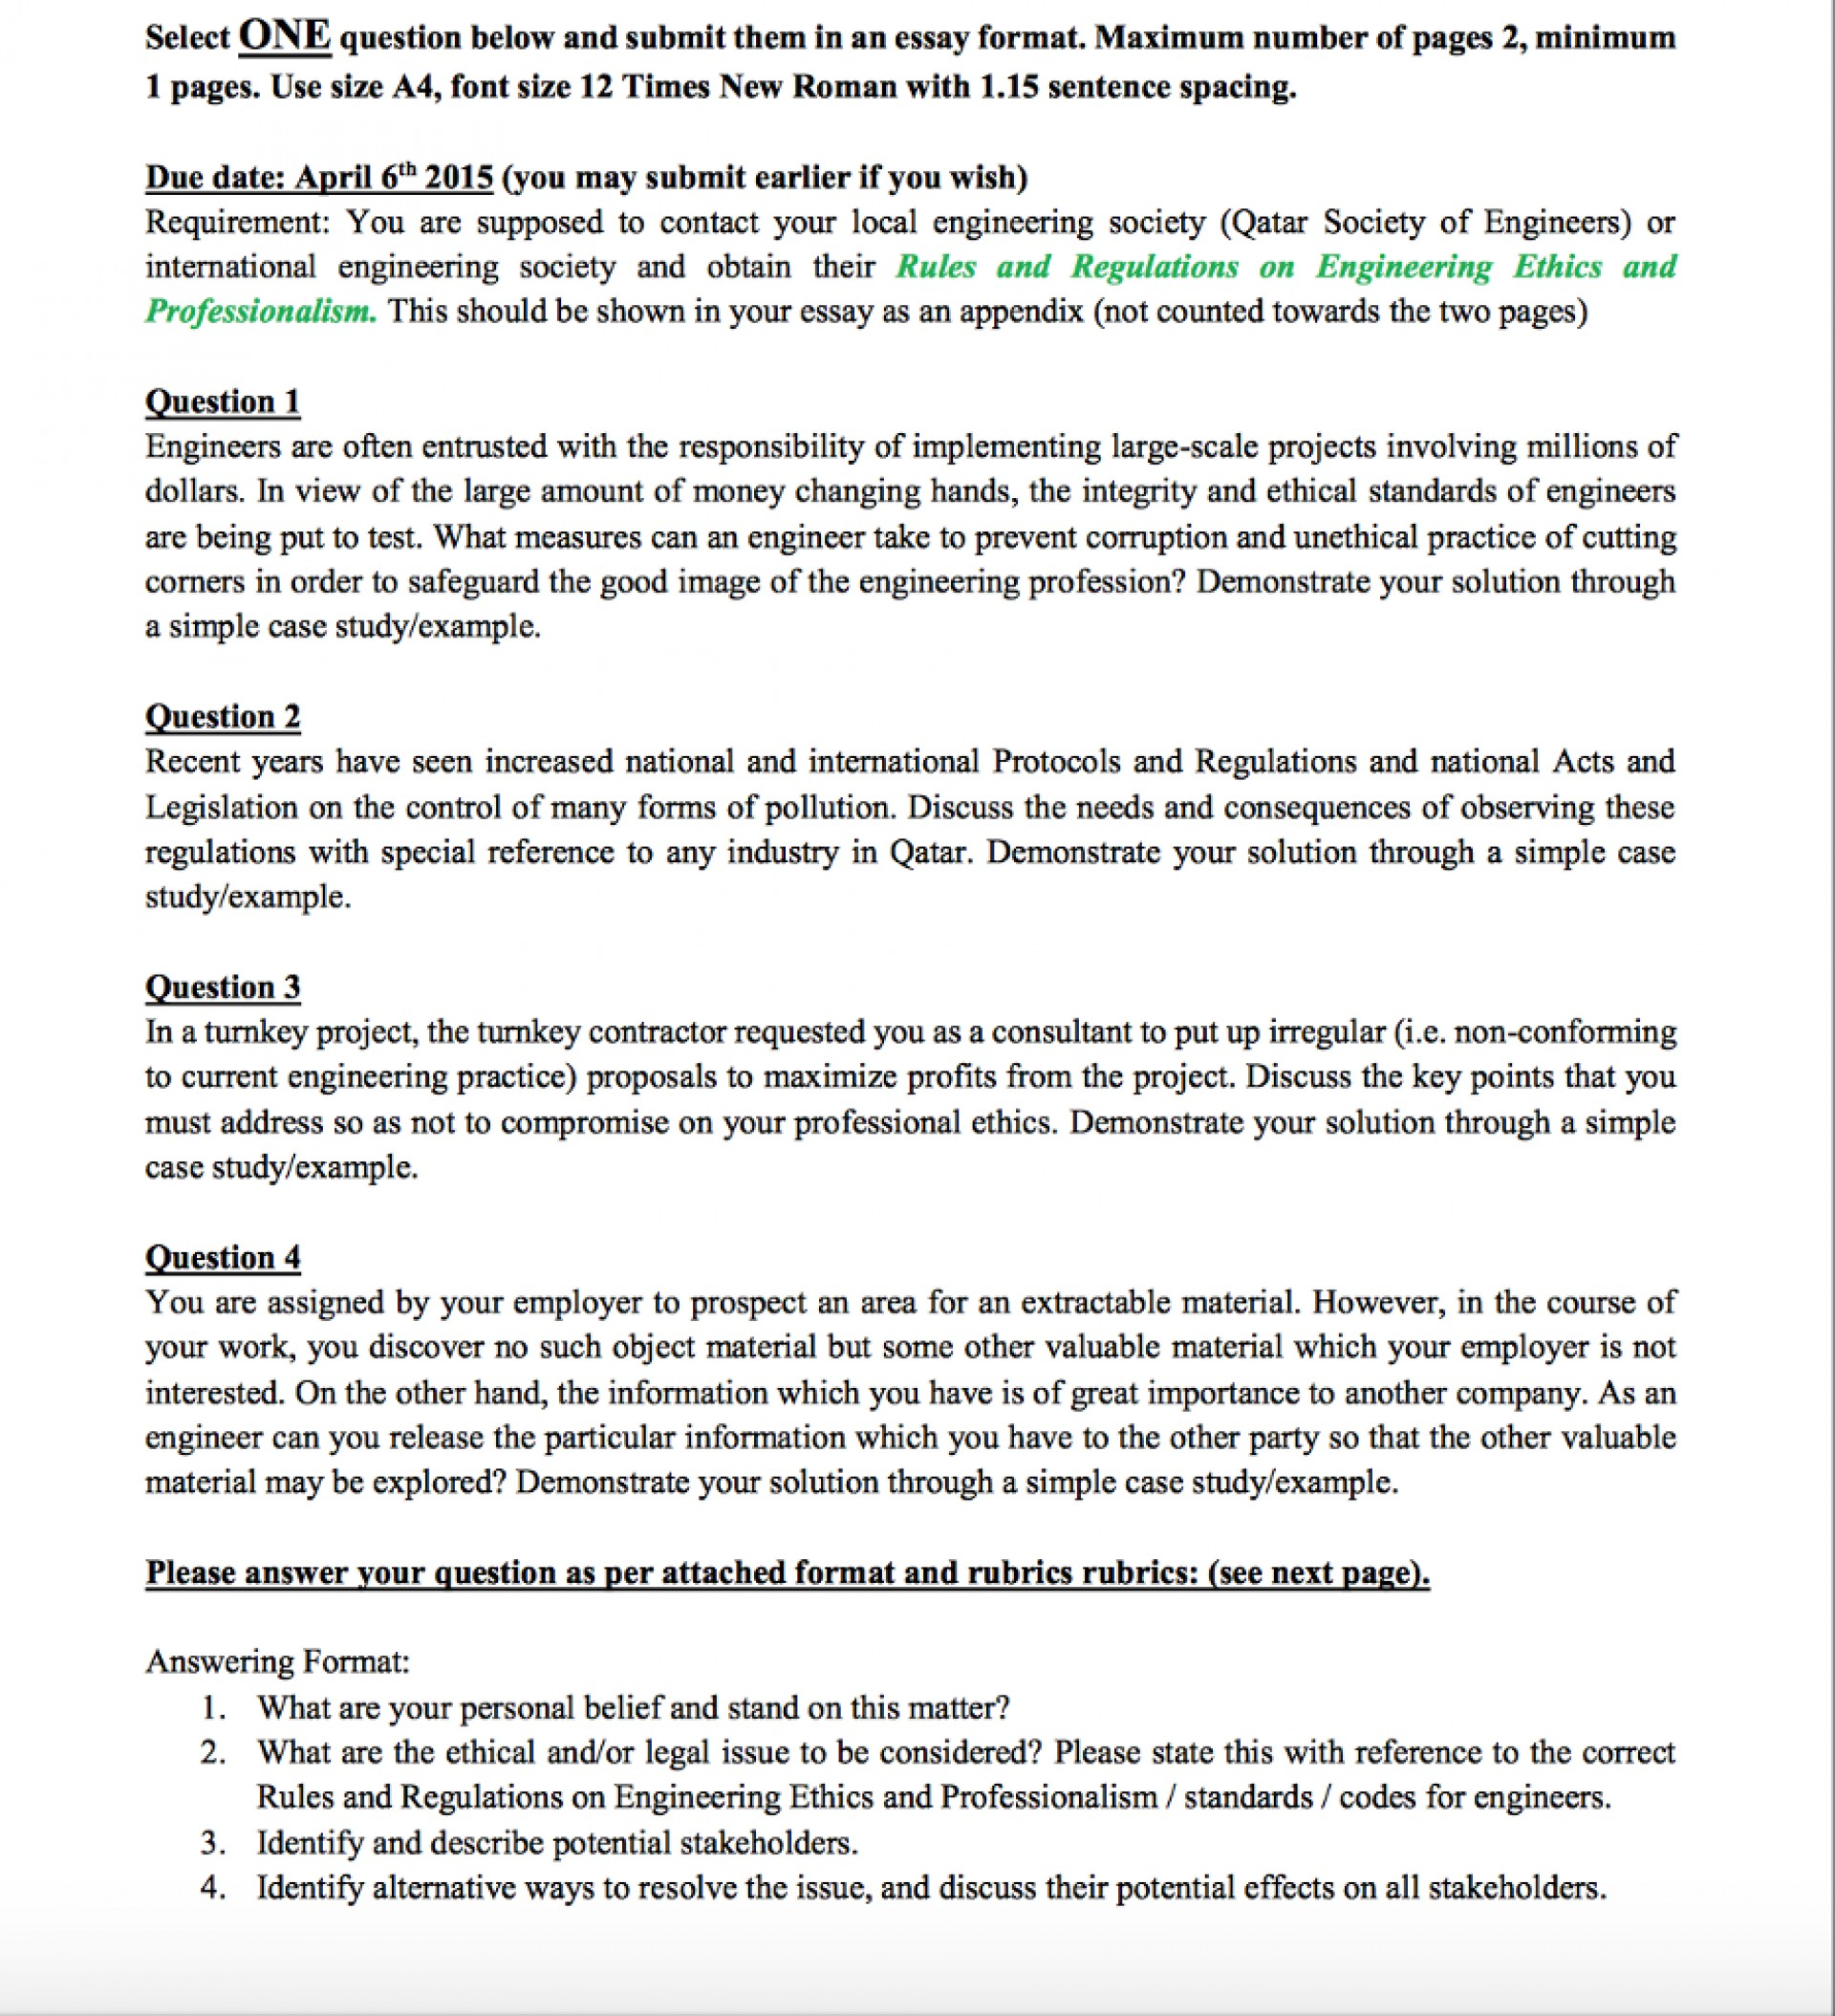 005 Essay Style Test Questions College Paper Academic Service How To Correctly Write Quote In An Structure English Time Movie Title Numbers Frightening Do You Correct Way 1920